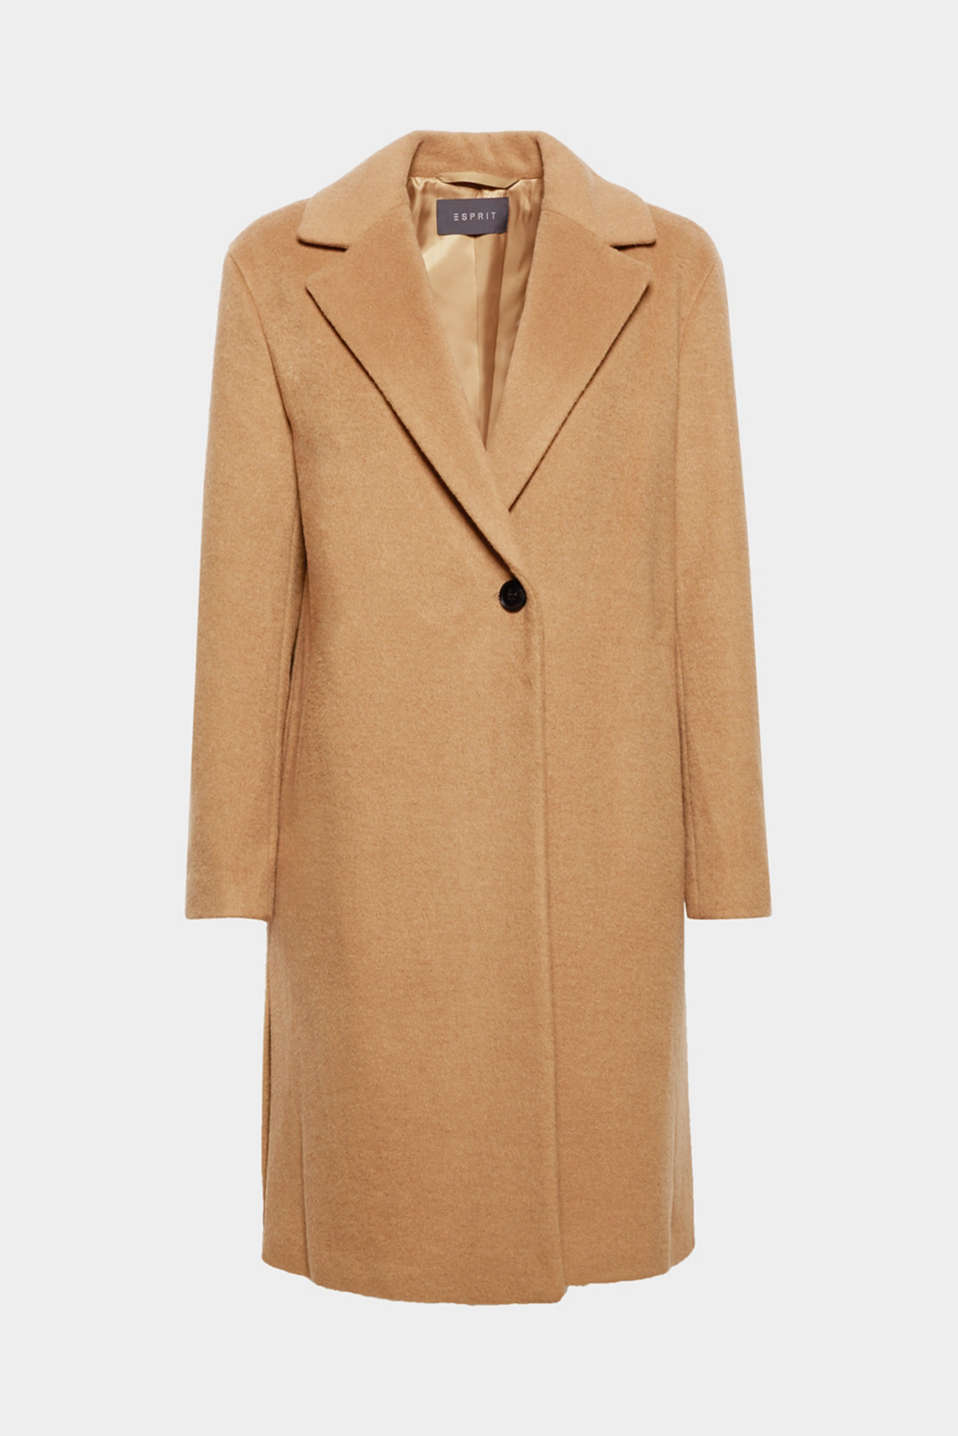 We love casual coats that wrap us up warmly: this one-button example is made of premium blended wool and features a wide lapel collar plus side slits!